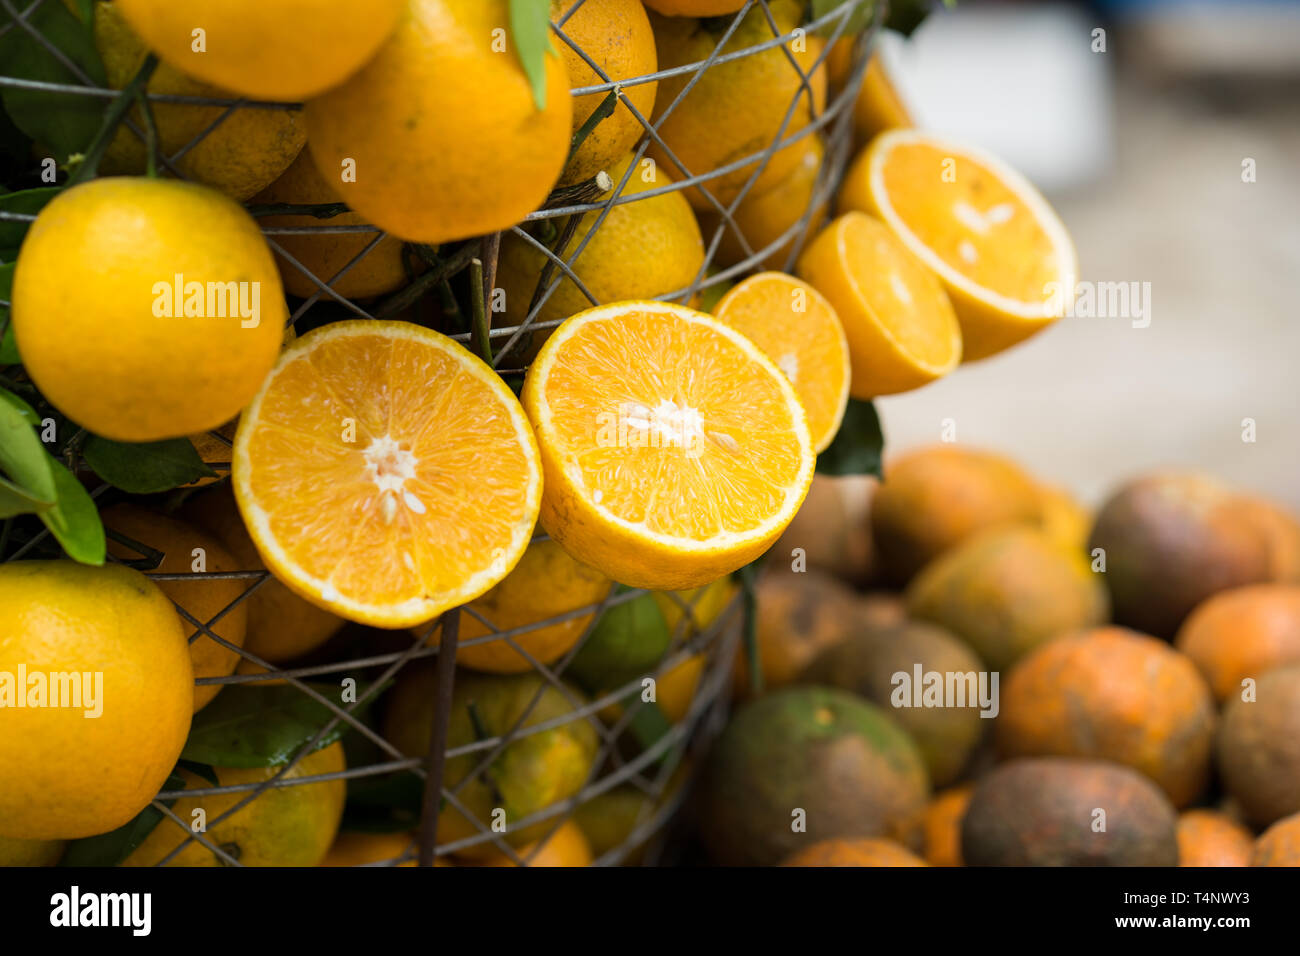 Tropical oranges hanging out and in basket. Focus on half cut orange - Stock Image